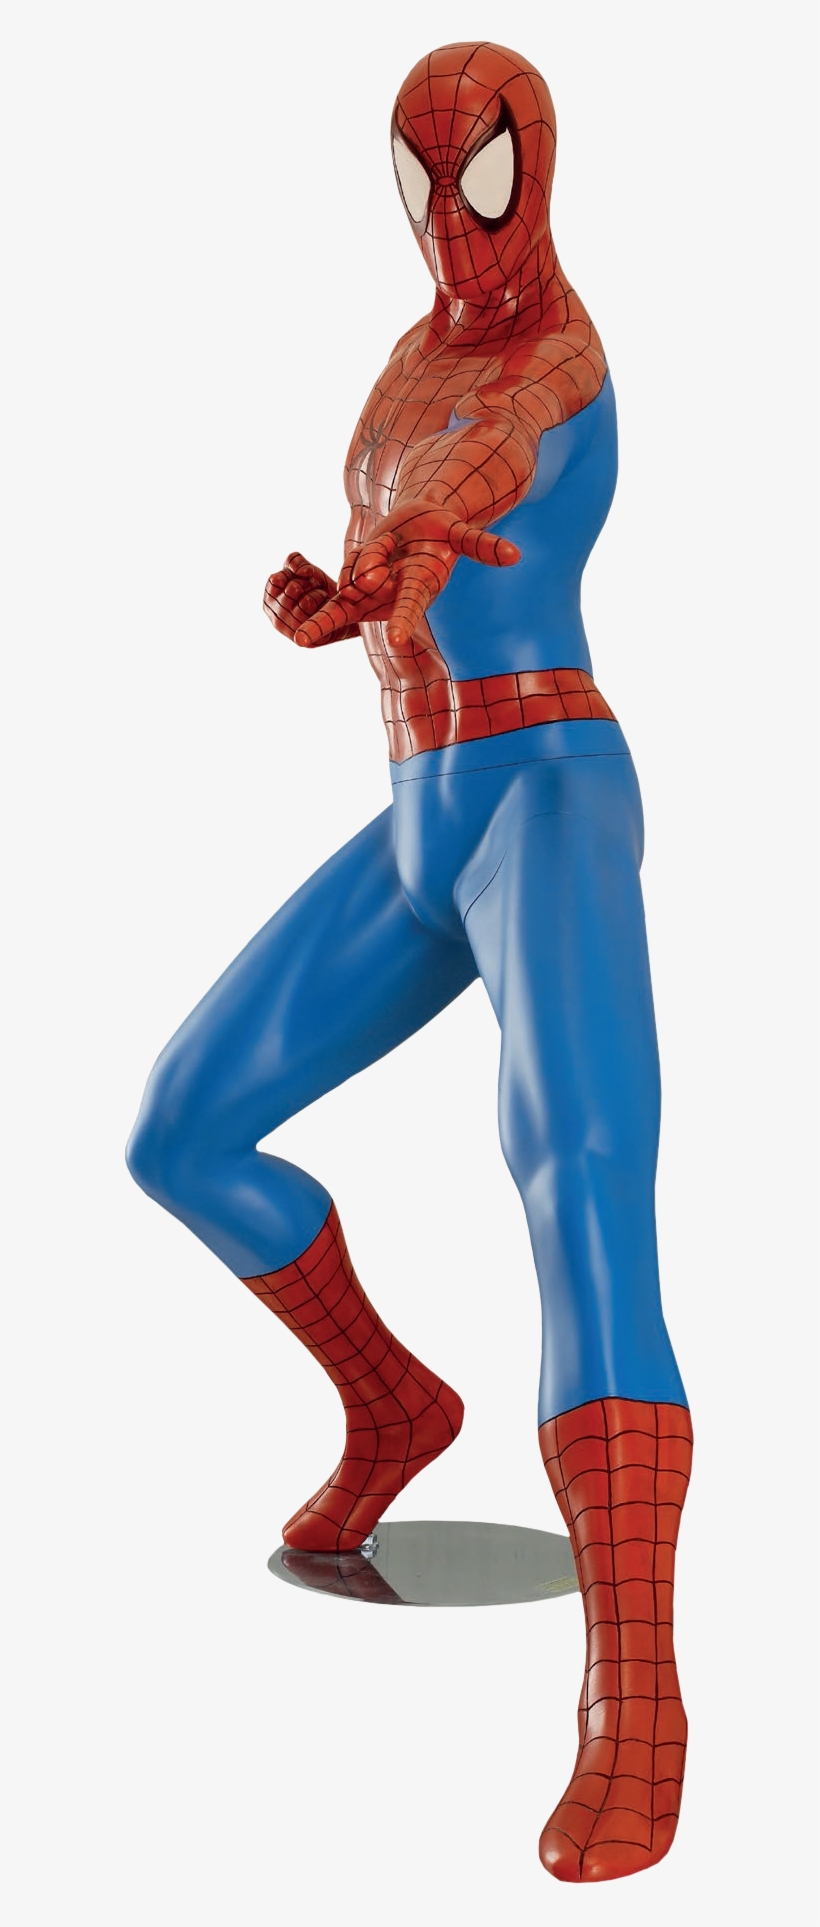 Spider Man Comic - Spiderman Full Size Statue, transparent png #4820706